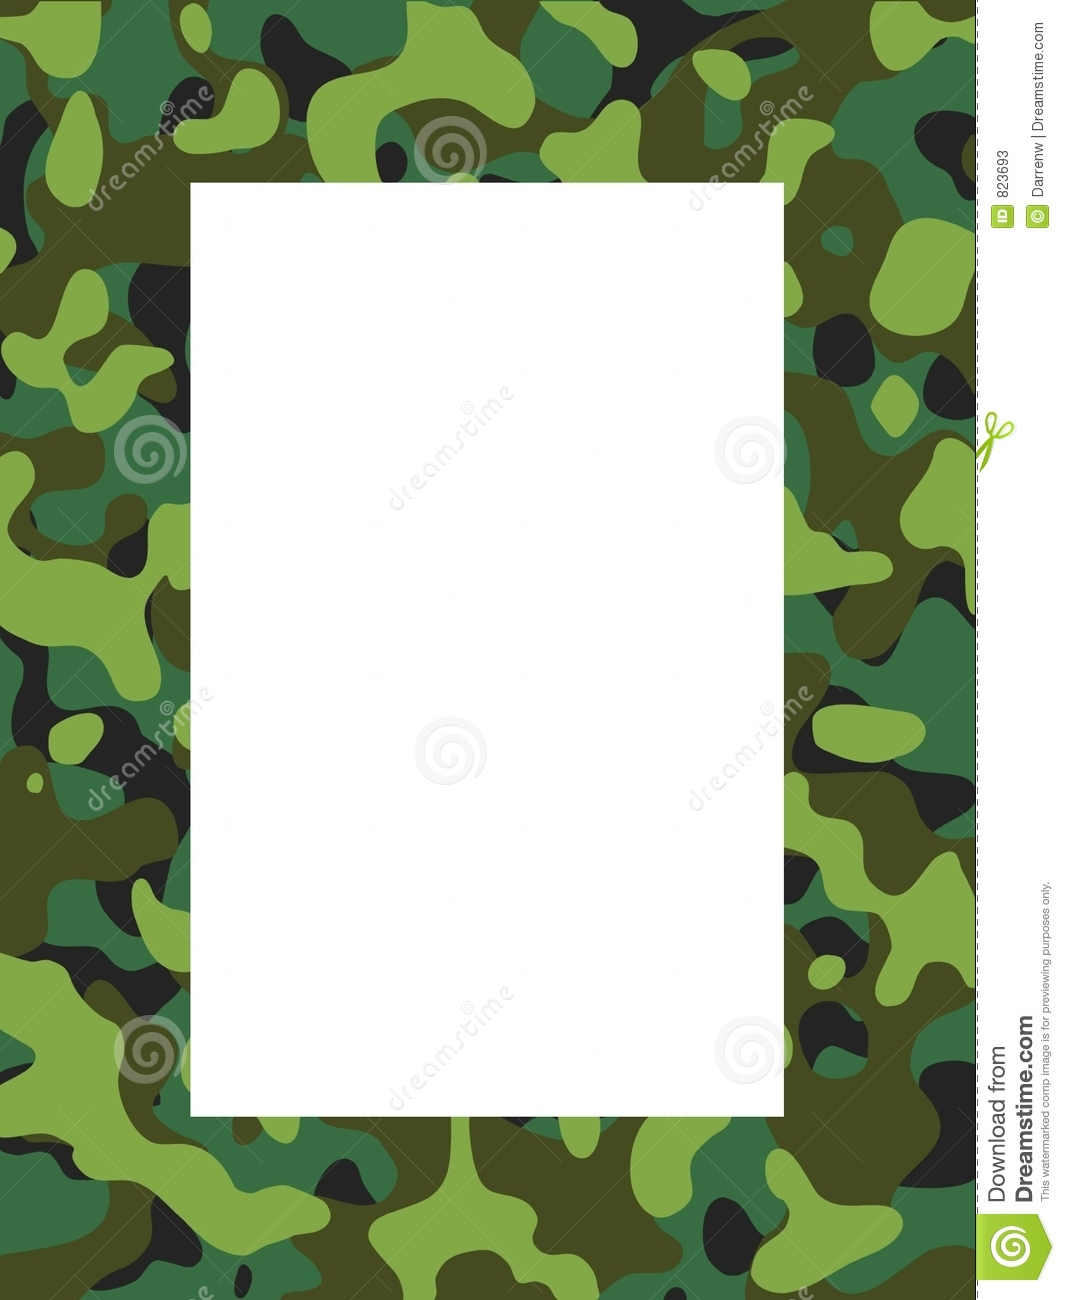 army borders clipart clipart kid